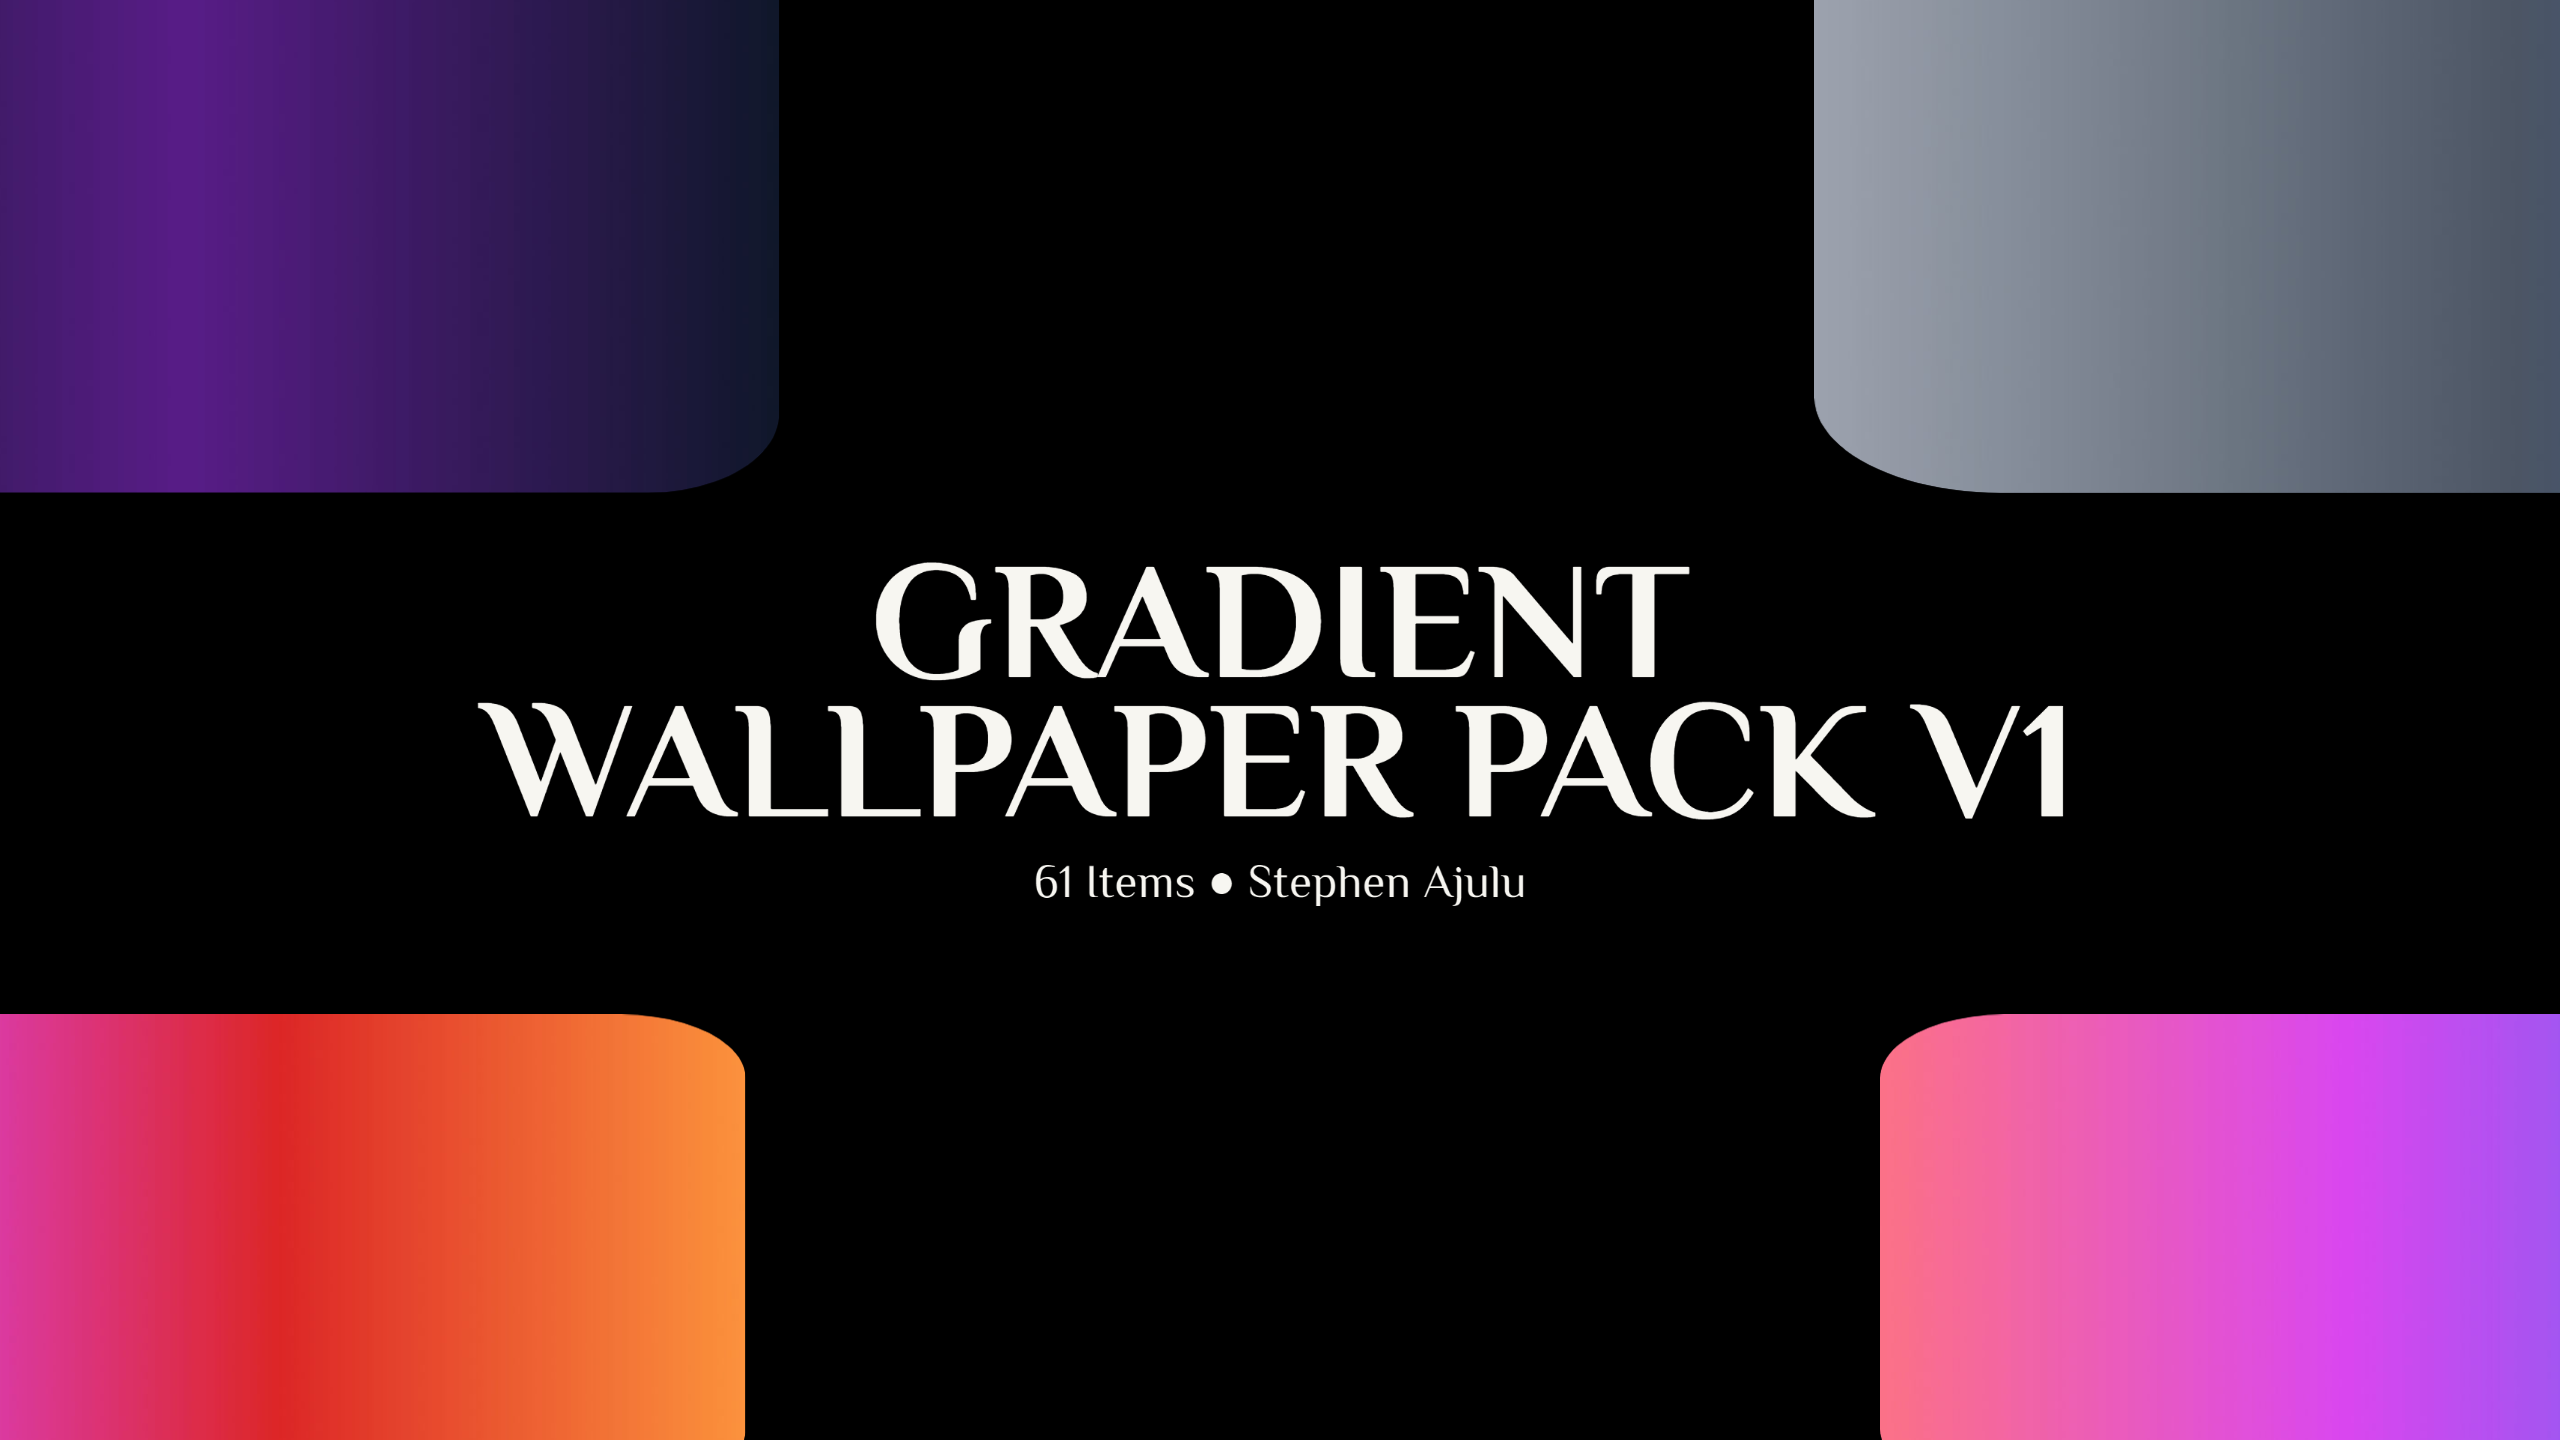 Gradient Wallpaper Pack Version 1 is Out